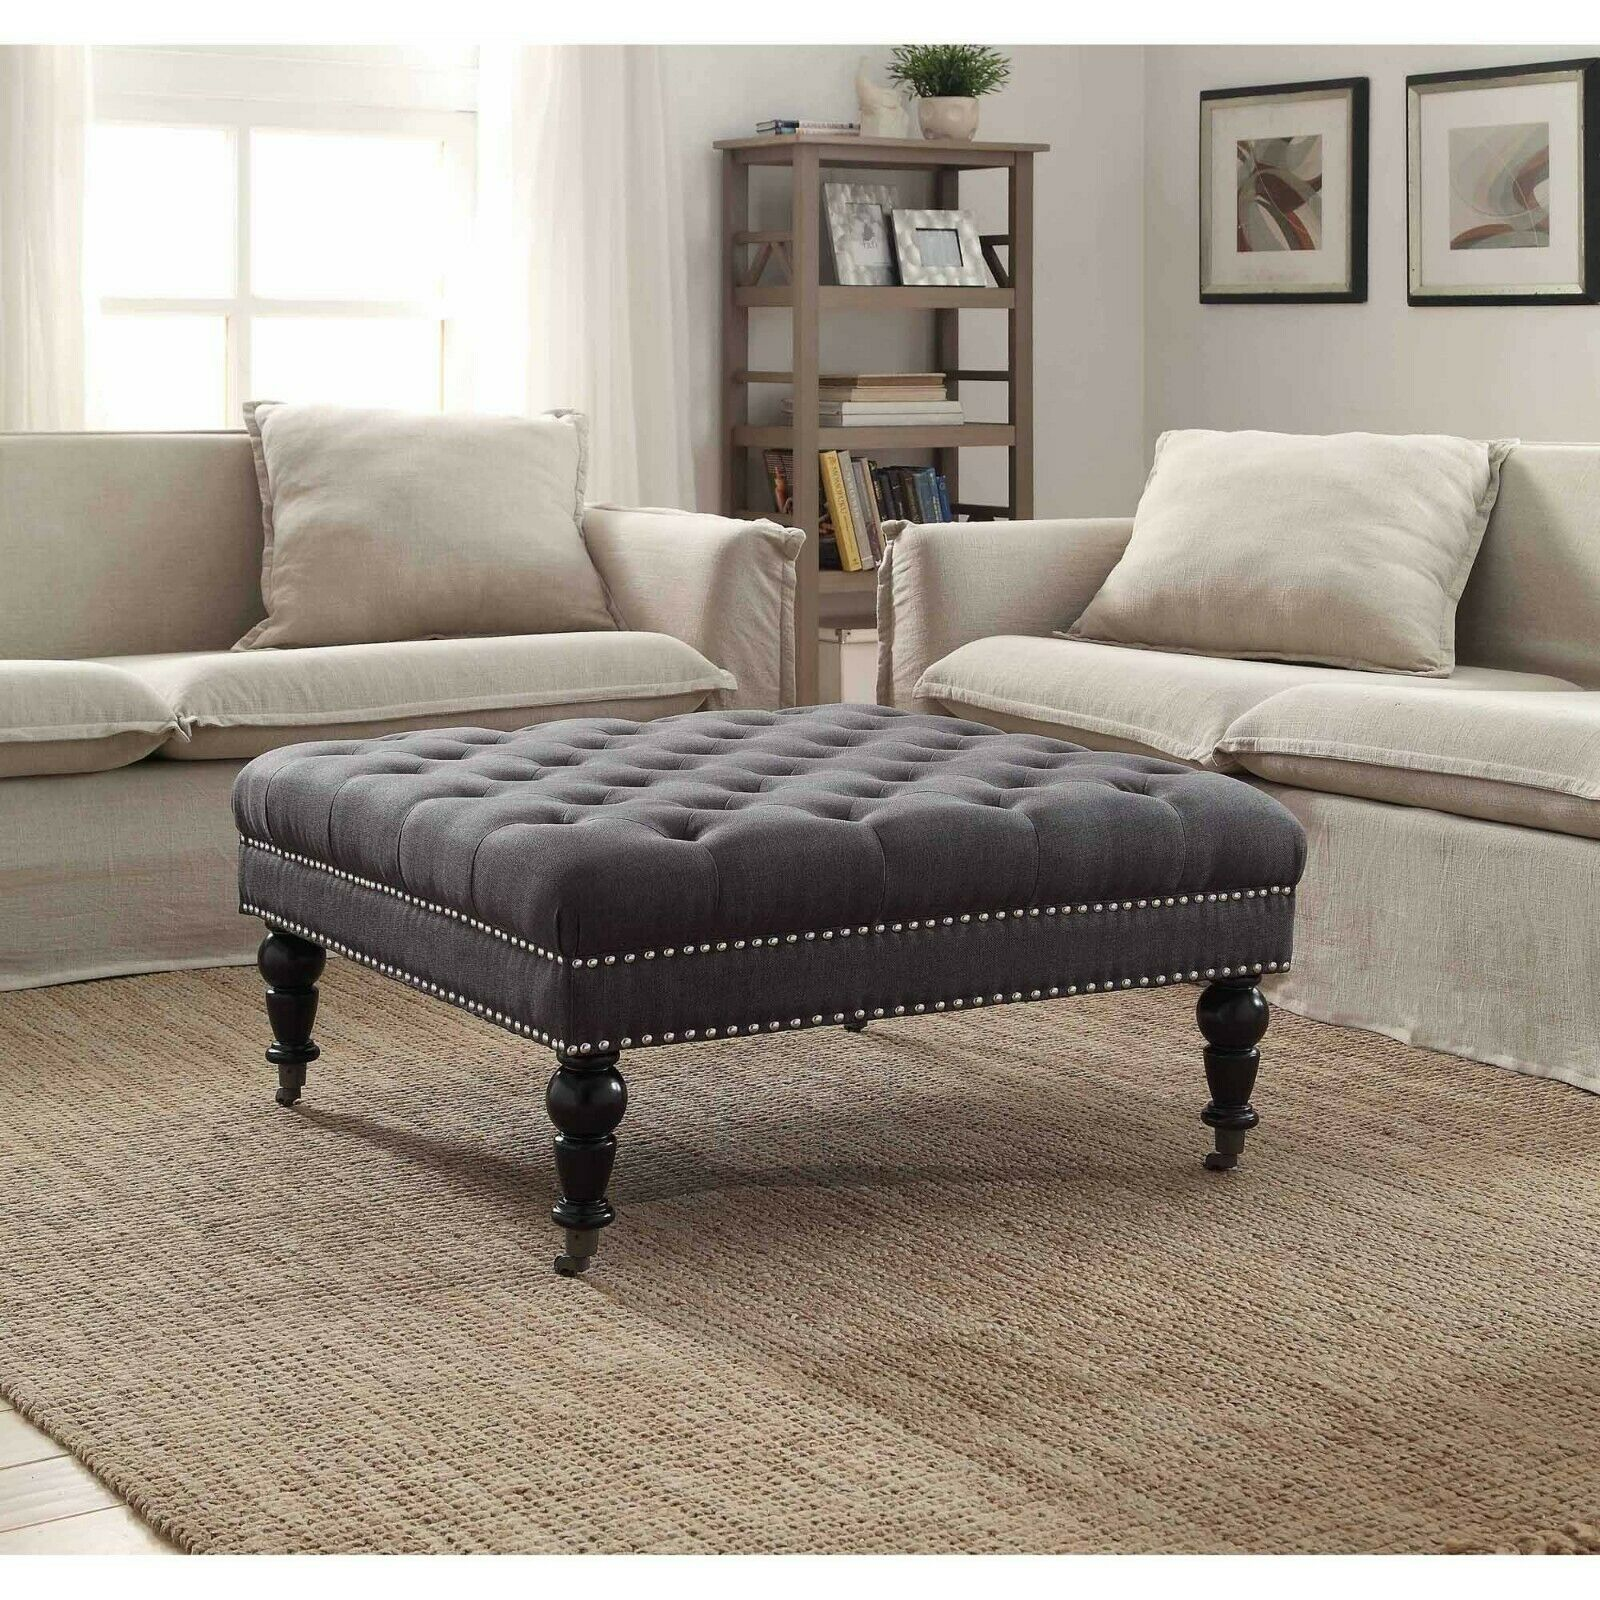 square coffee table ottoman w wheels tufted linen upholstered oversized gray new